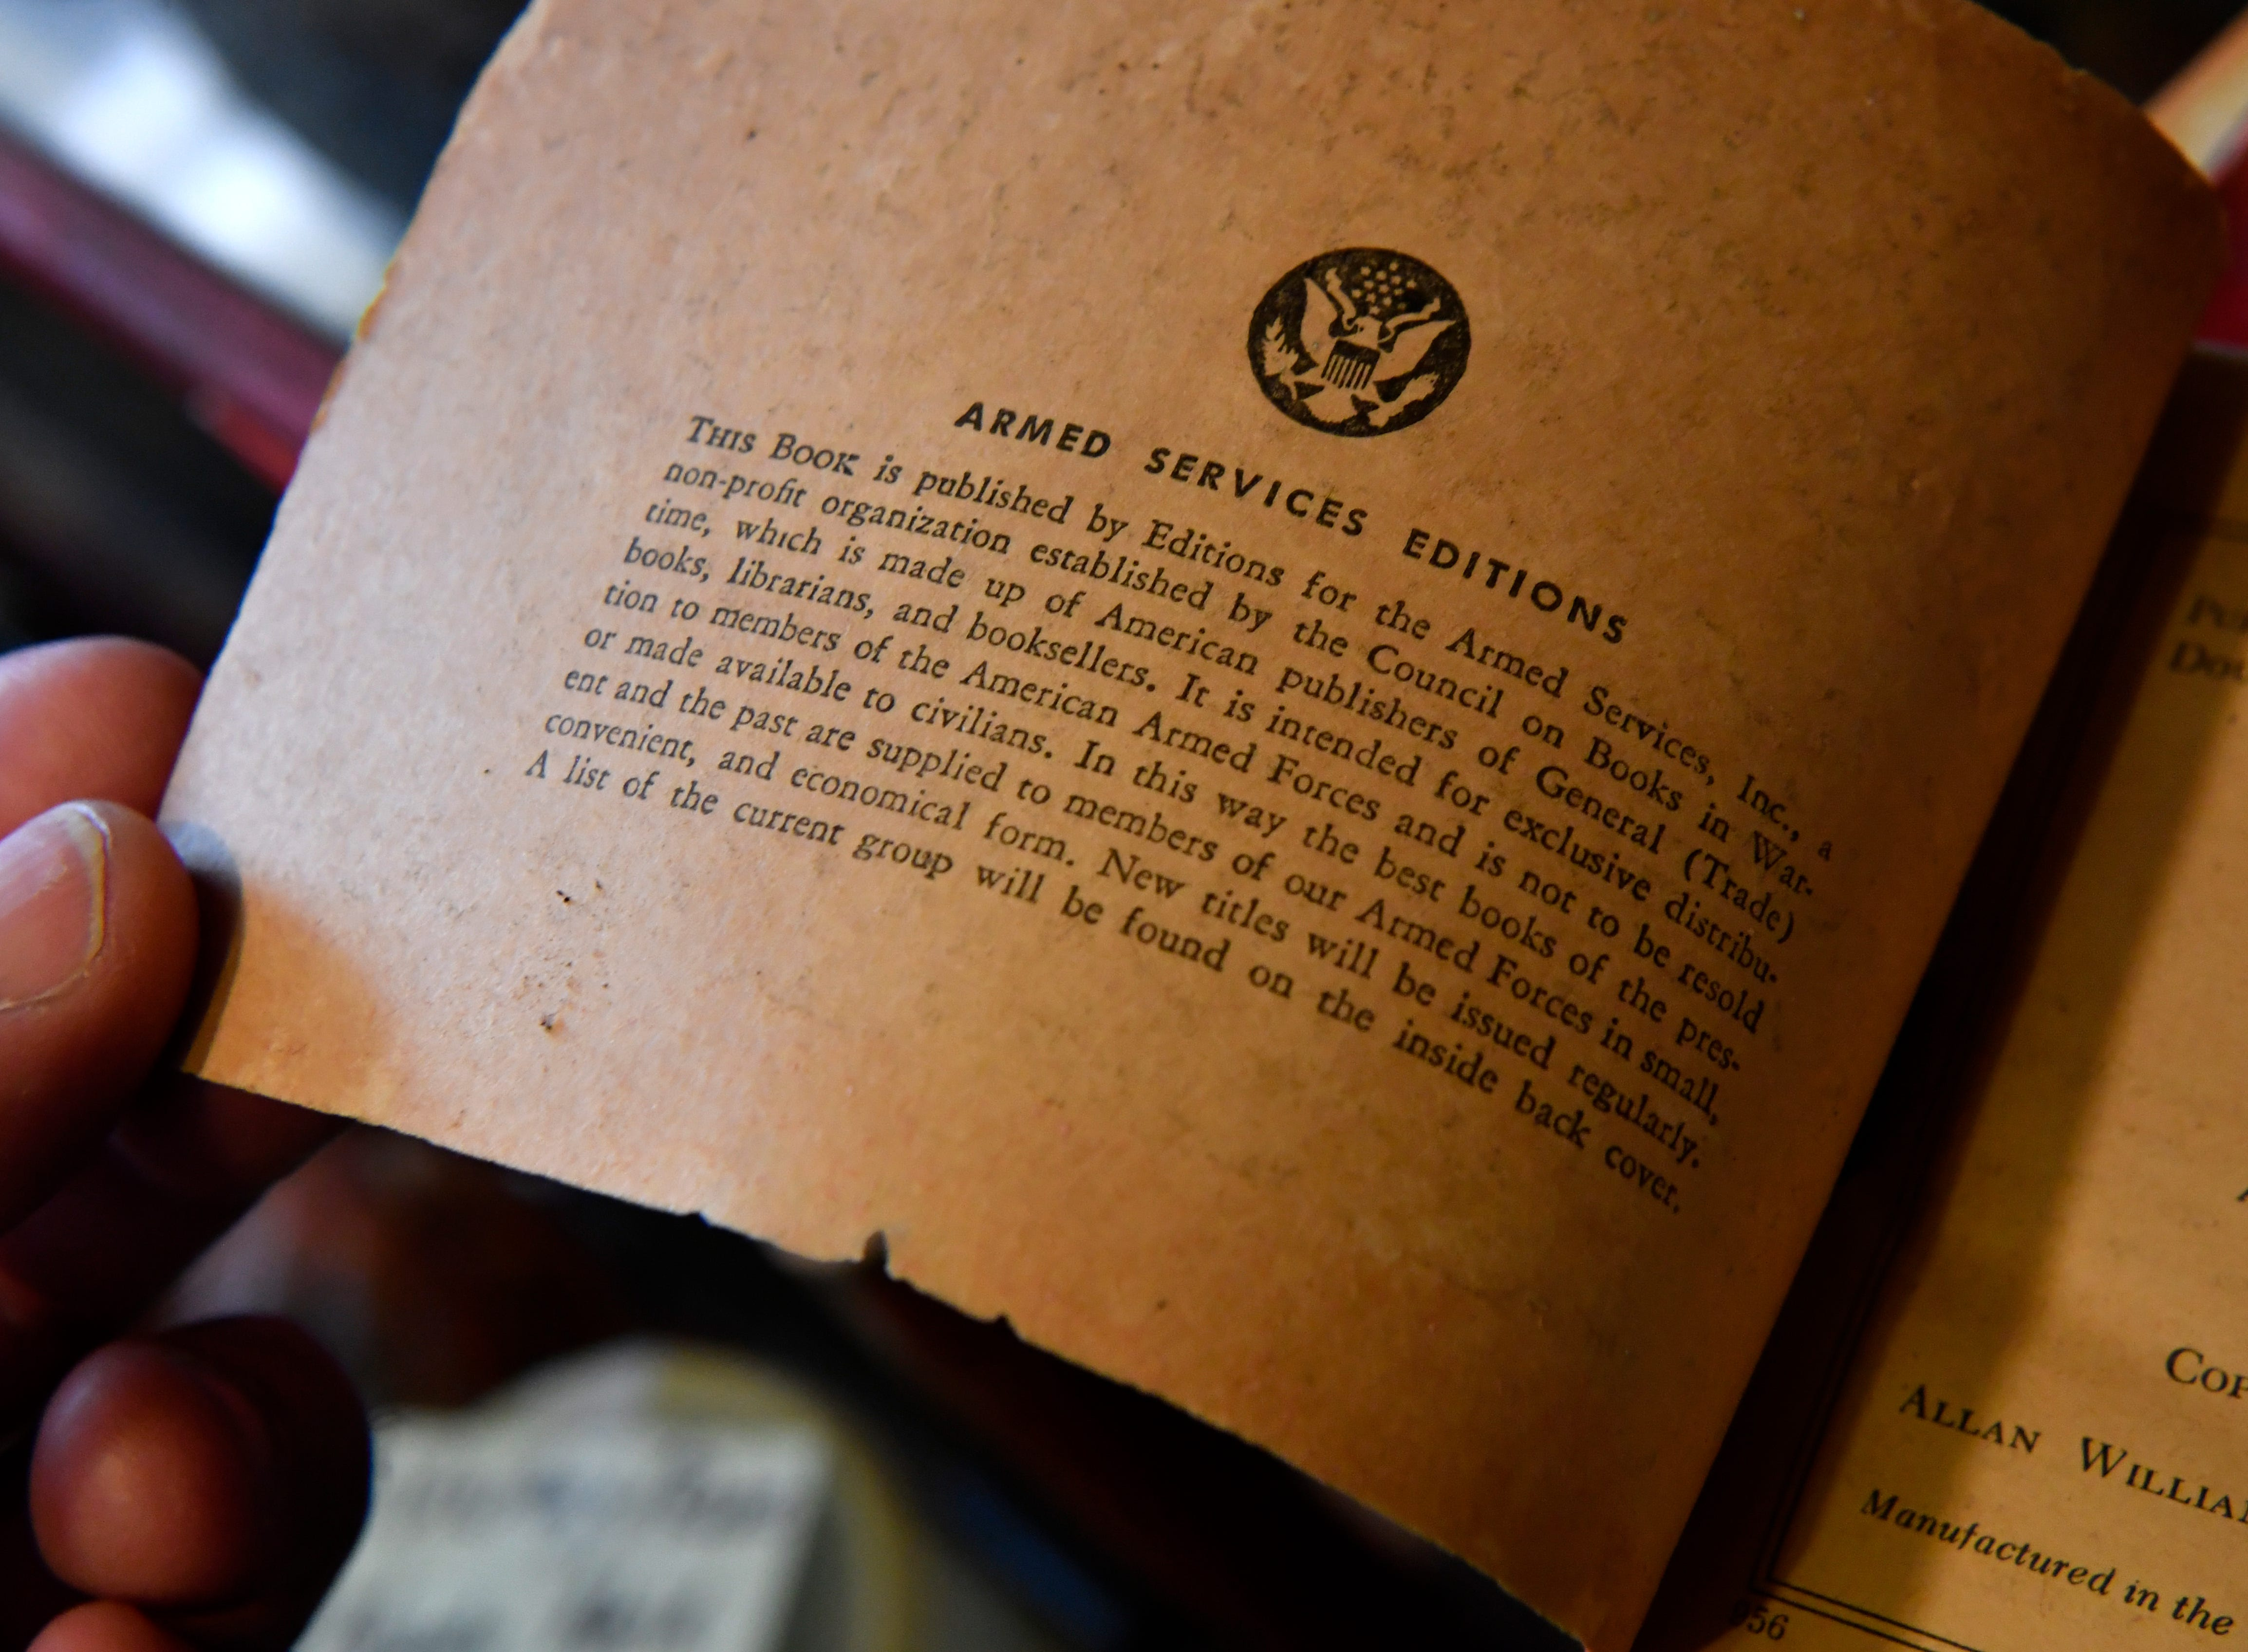 The inside cover of an Armed Services Edition paperback produced for military service members in World War II.